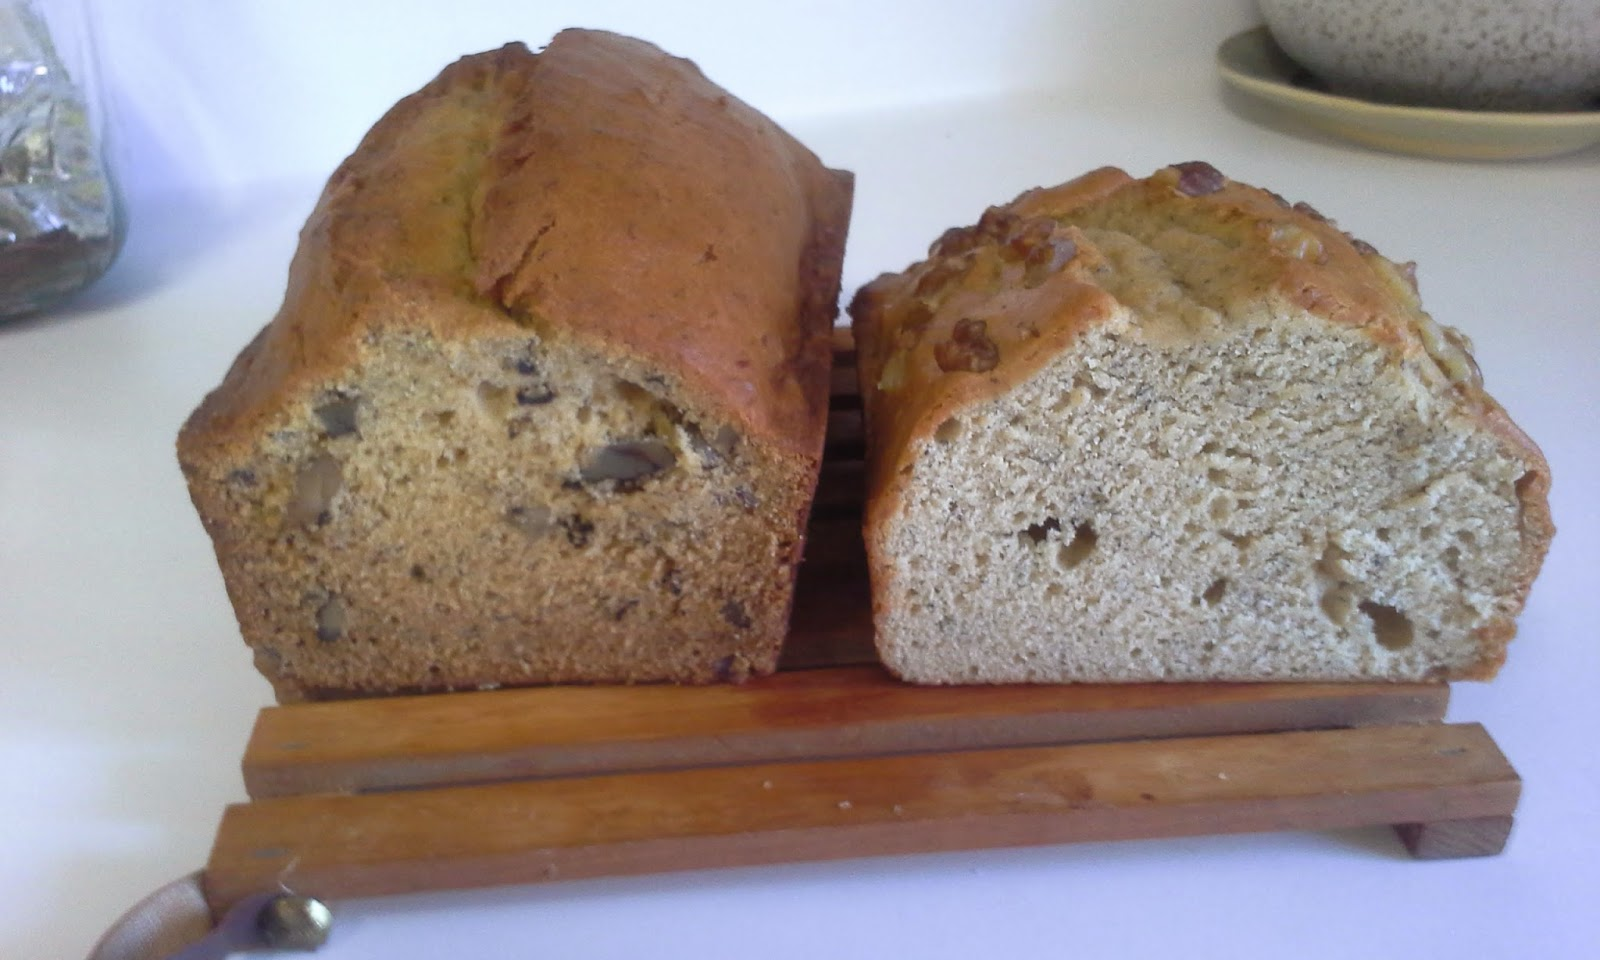 Sonia Nance 39 S Blog Crisco Or Butter Banana Nut Bread Part Two October 16 2014 20 45